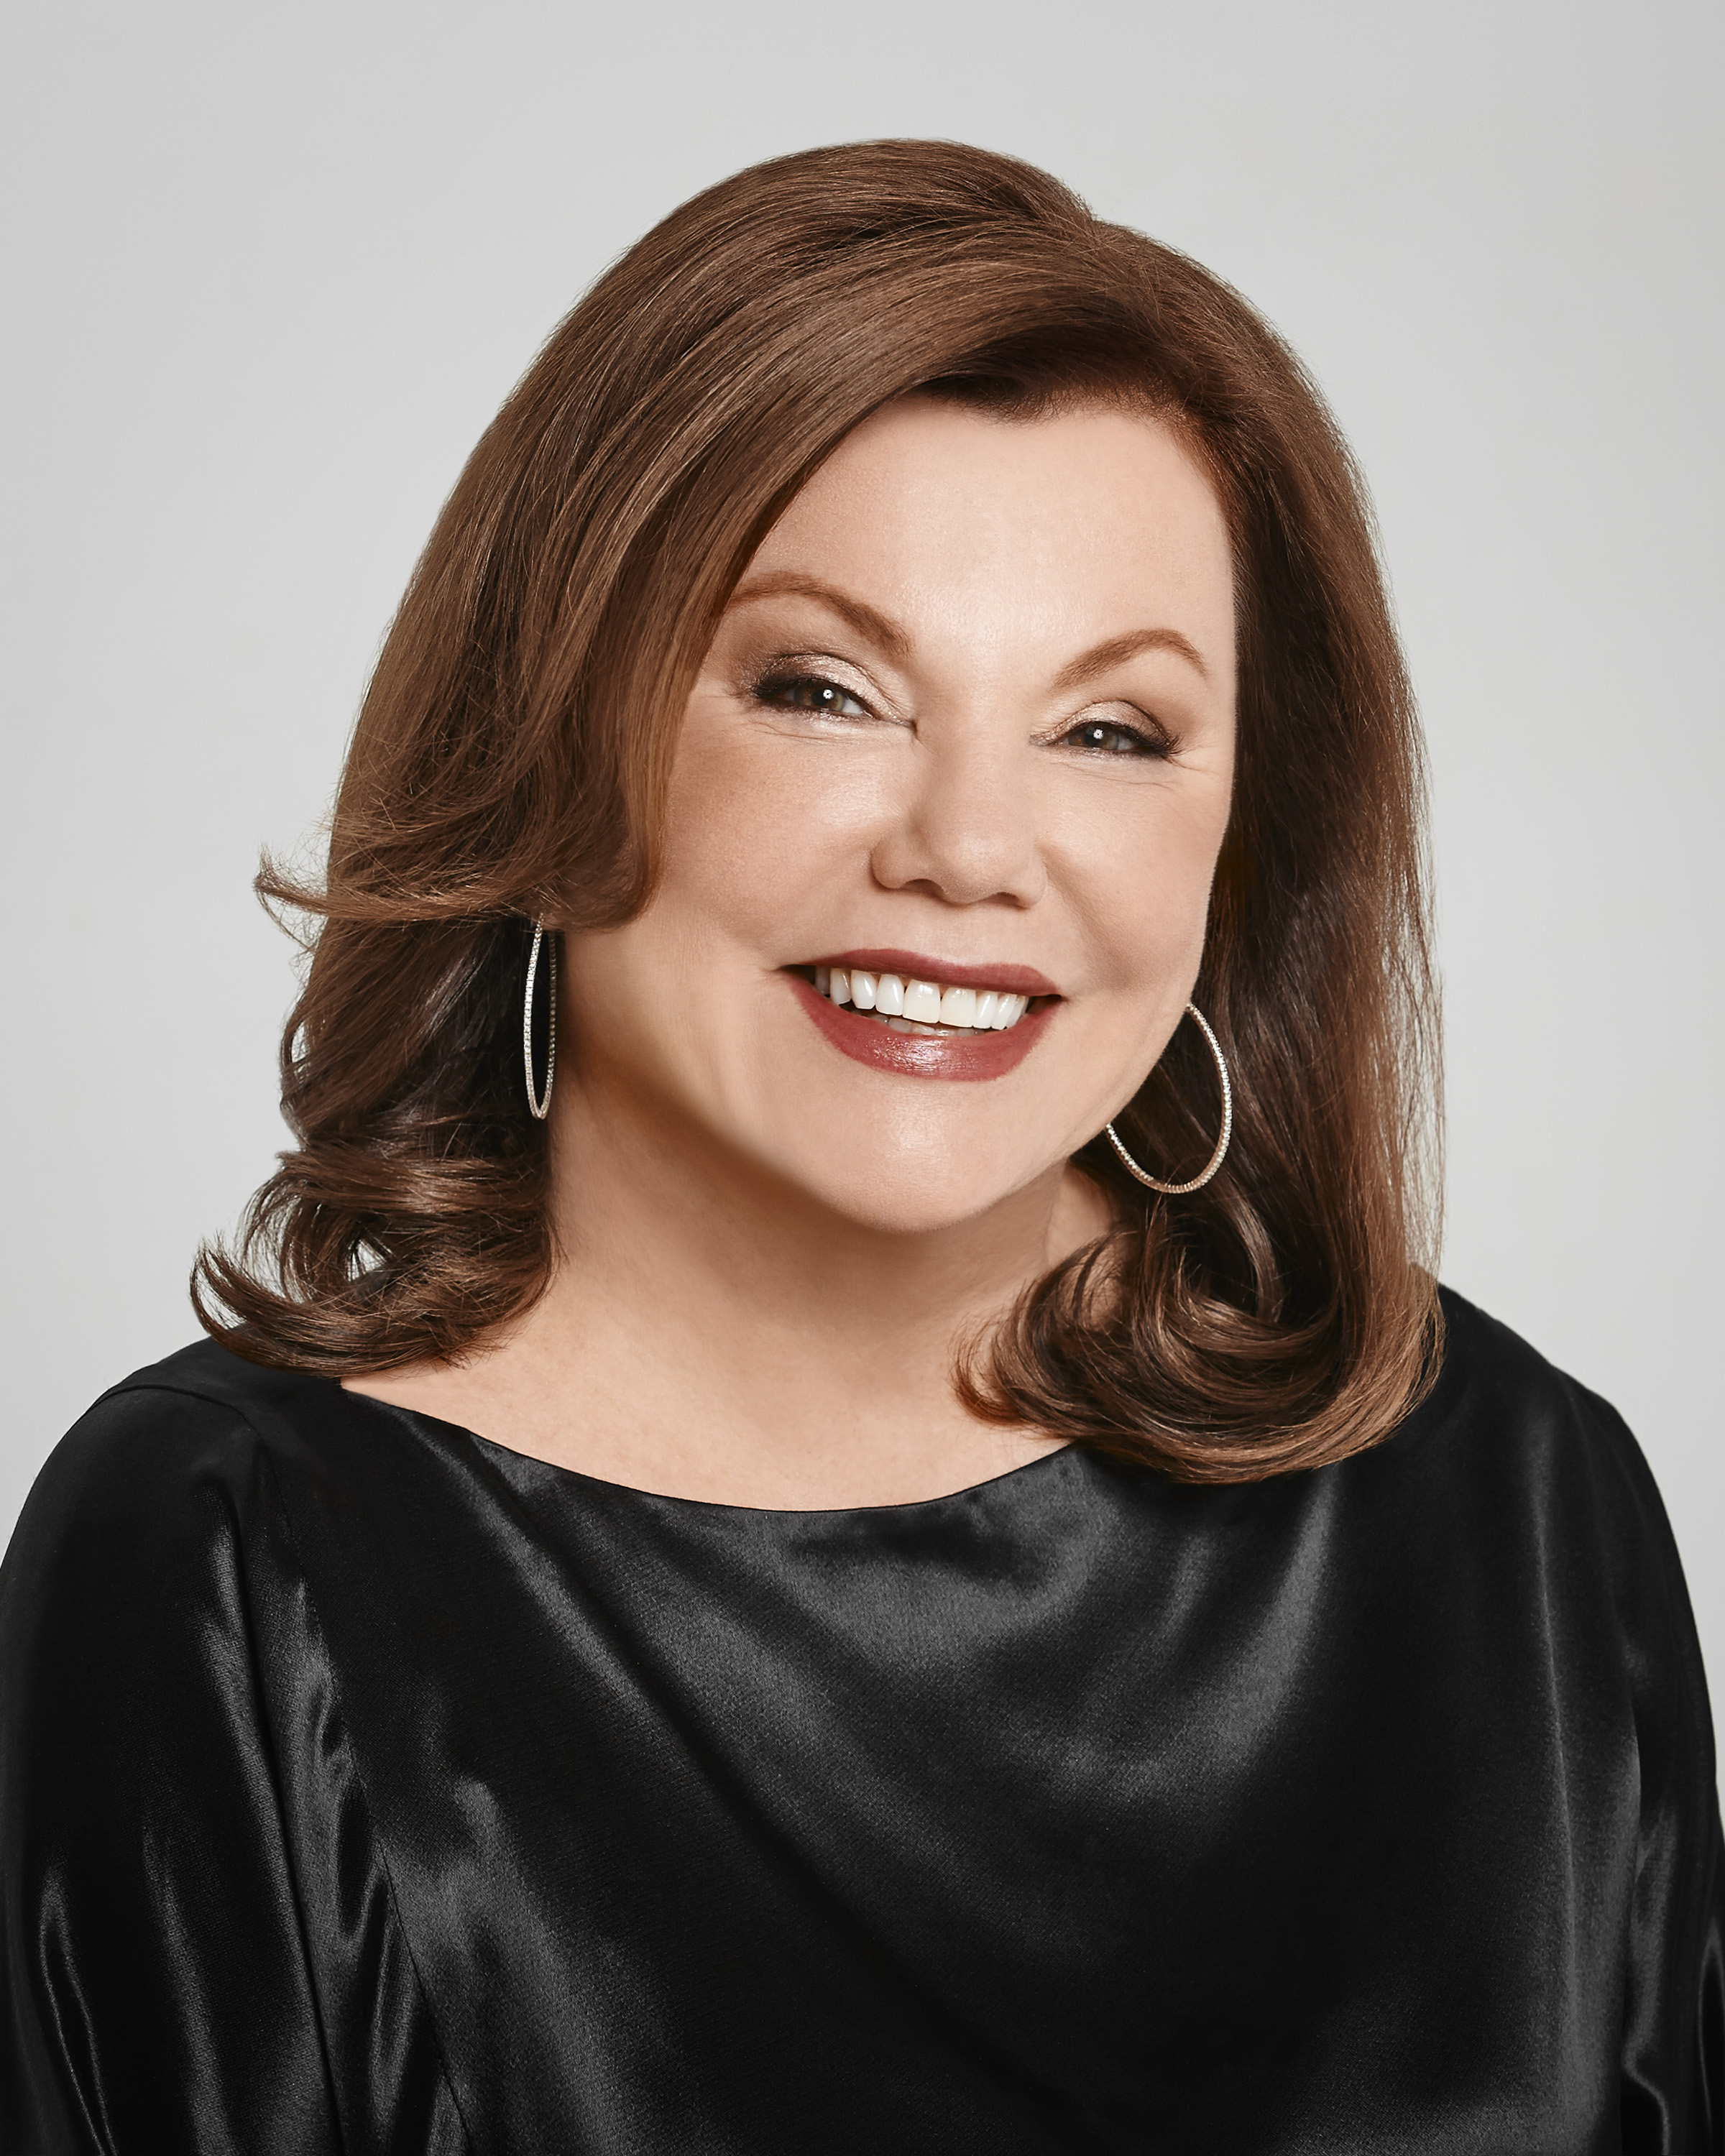 Caption: Marsha Mason